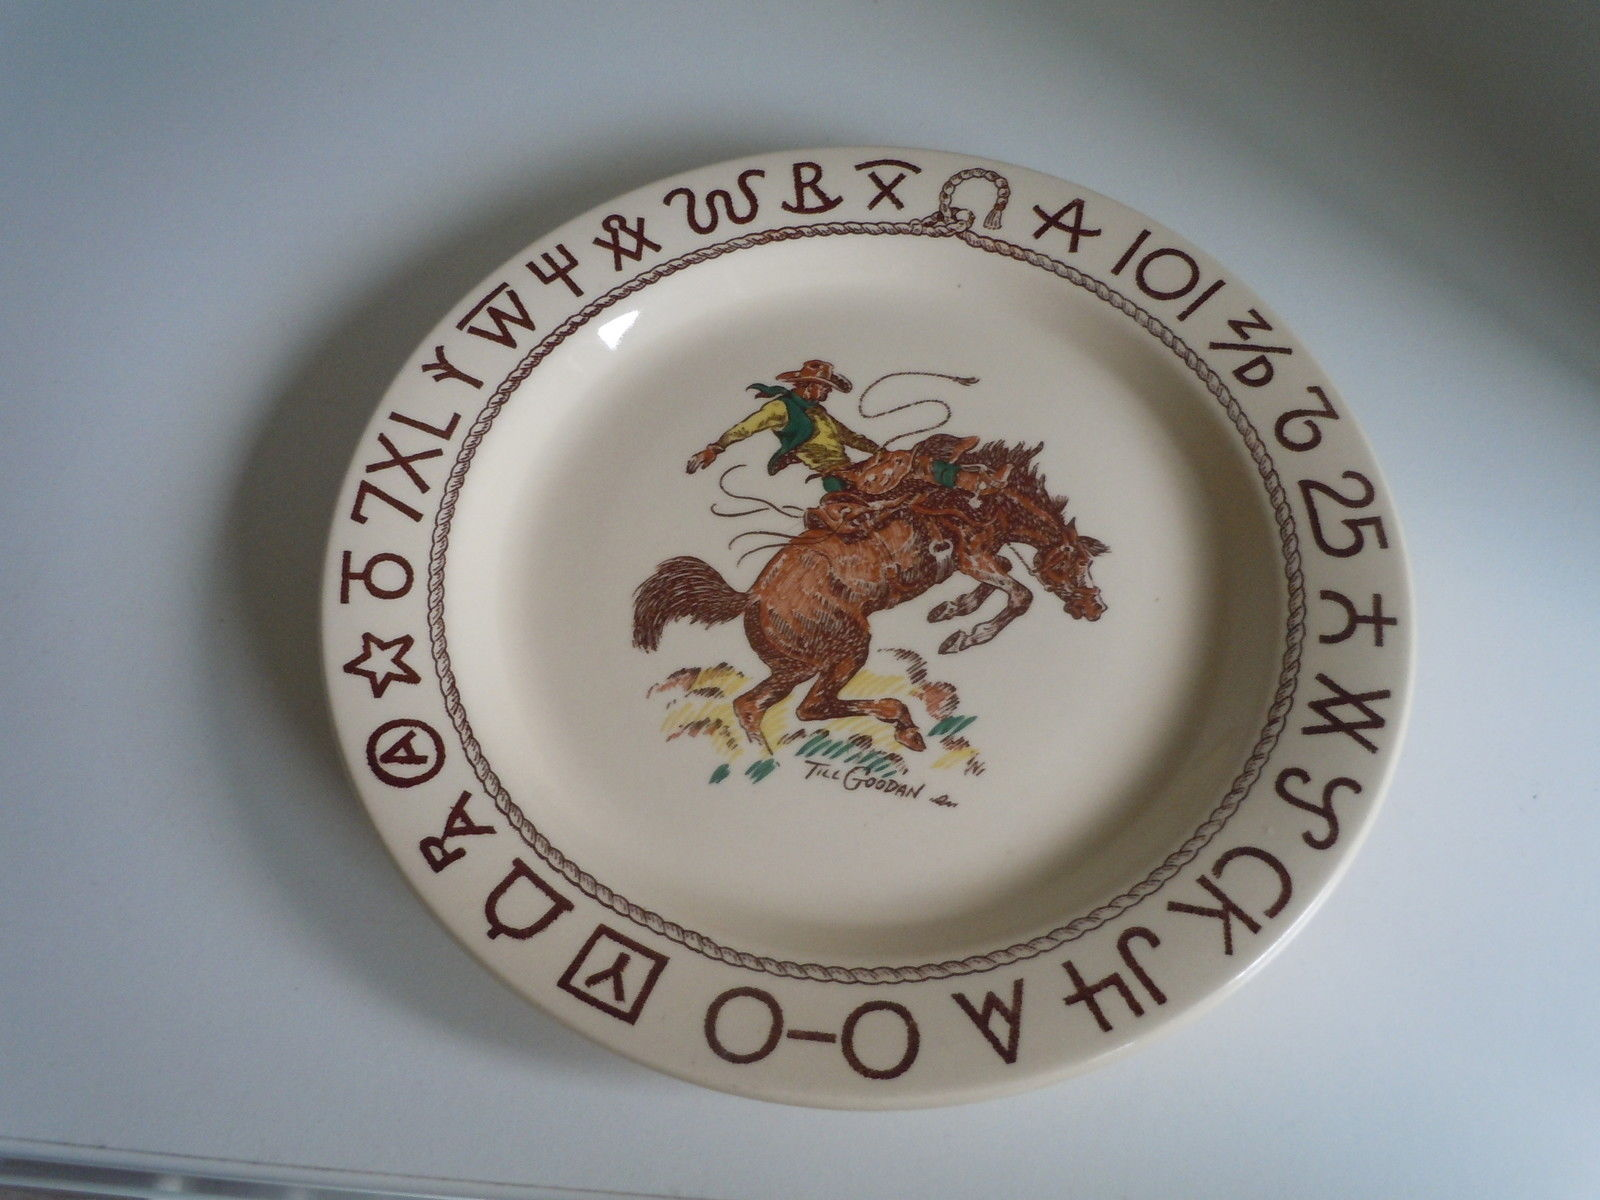 Wallace Rodeo Dinner plate ware